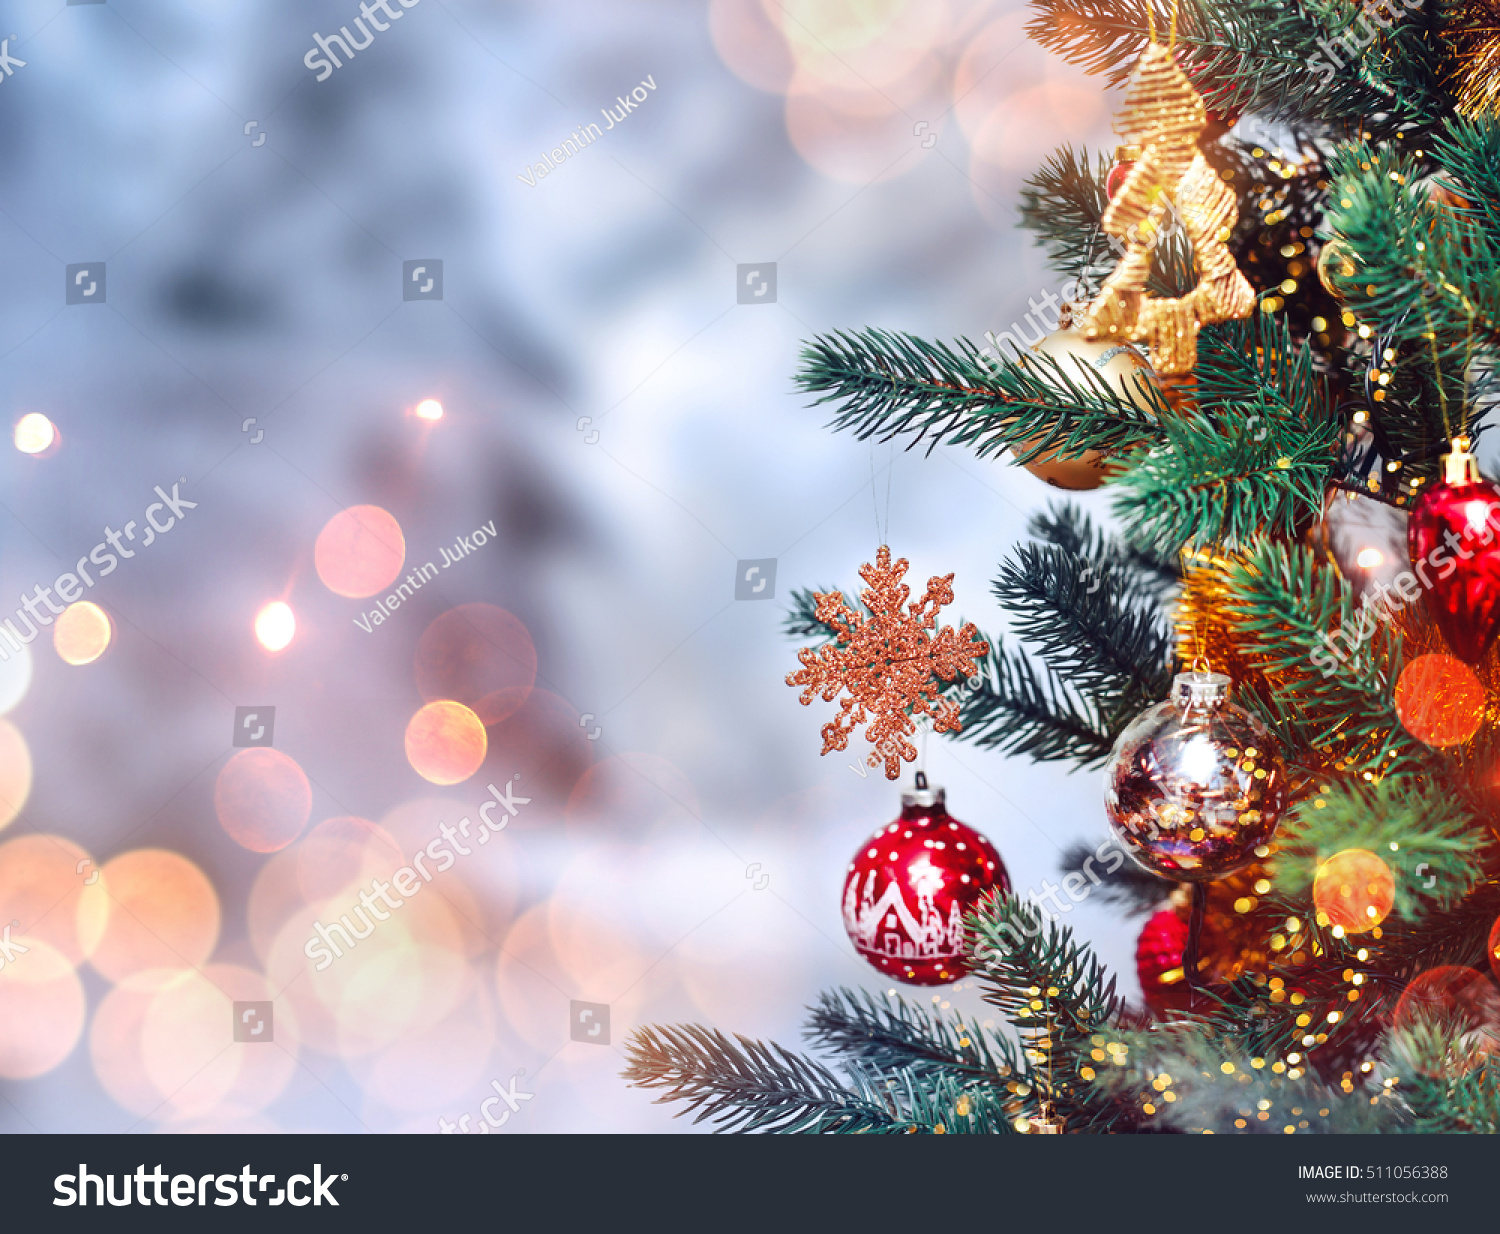 Christmas Tree Background Christmas Decorations Snow Stock